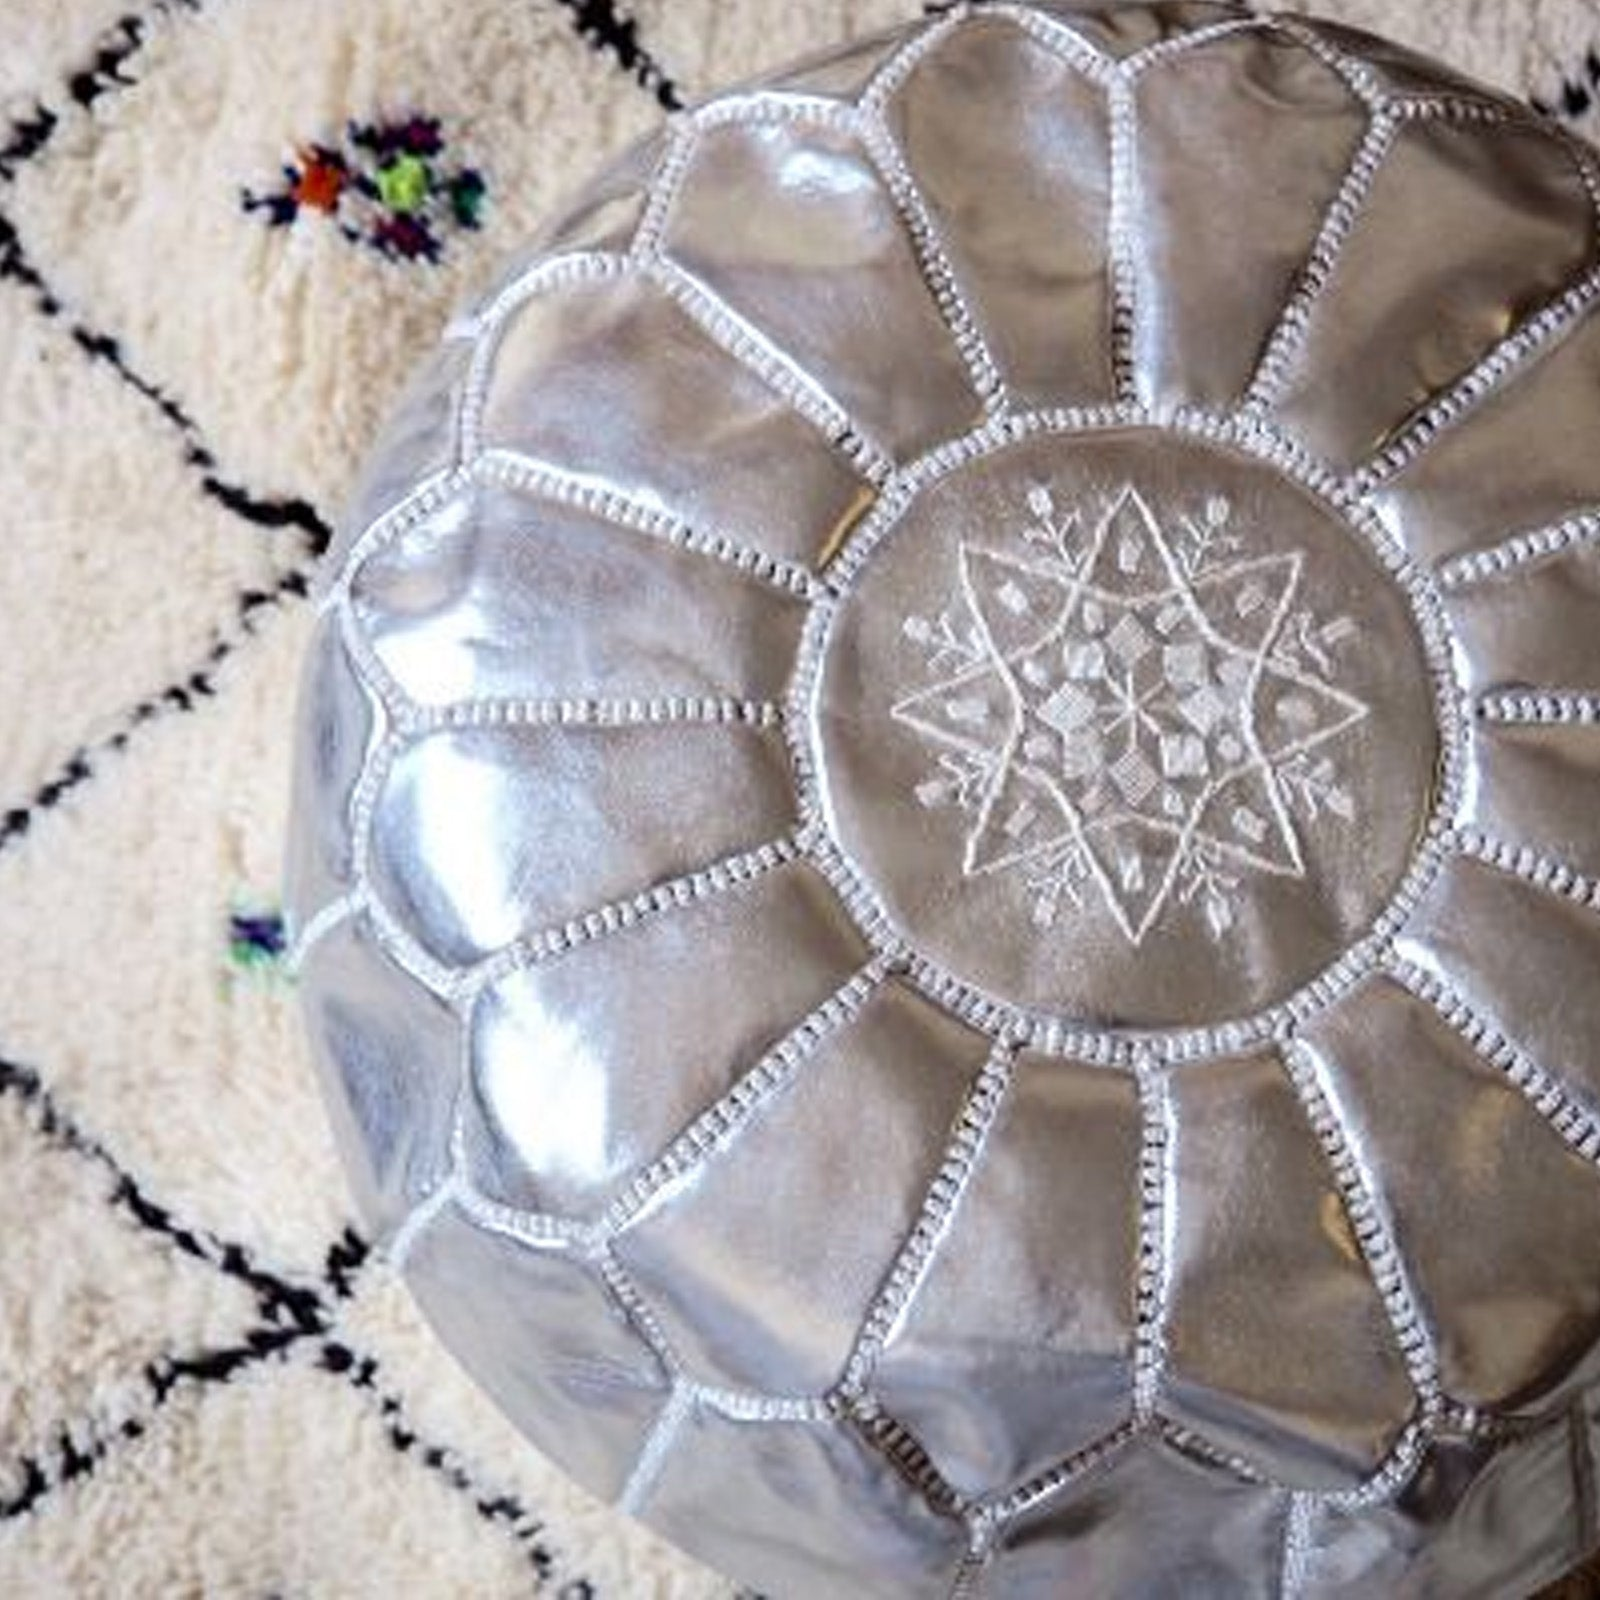 Handmade Genuine Leather Moroccan style Pouf morocco-silver -  بوف جلد طبيعي مصنوع يدويًا على الطراز المغربي - Shop Online Furniture and Home Decor Store in Dubai, UAE at ebarza